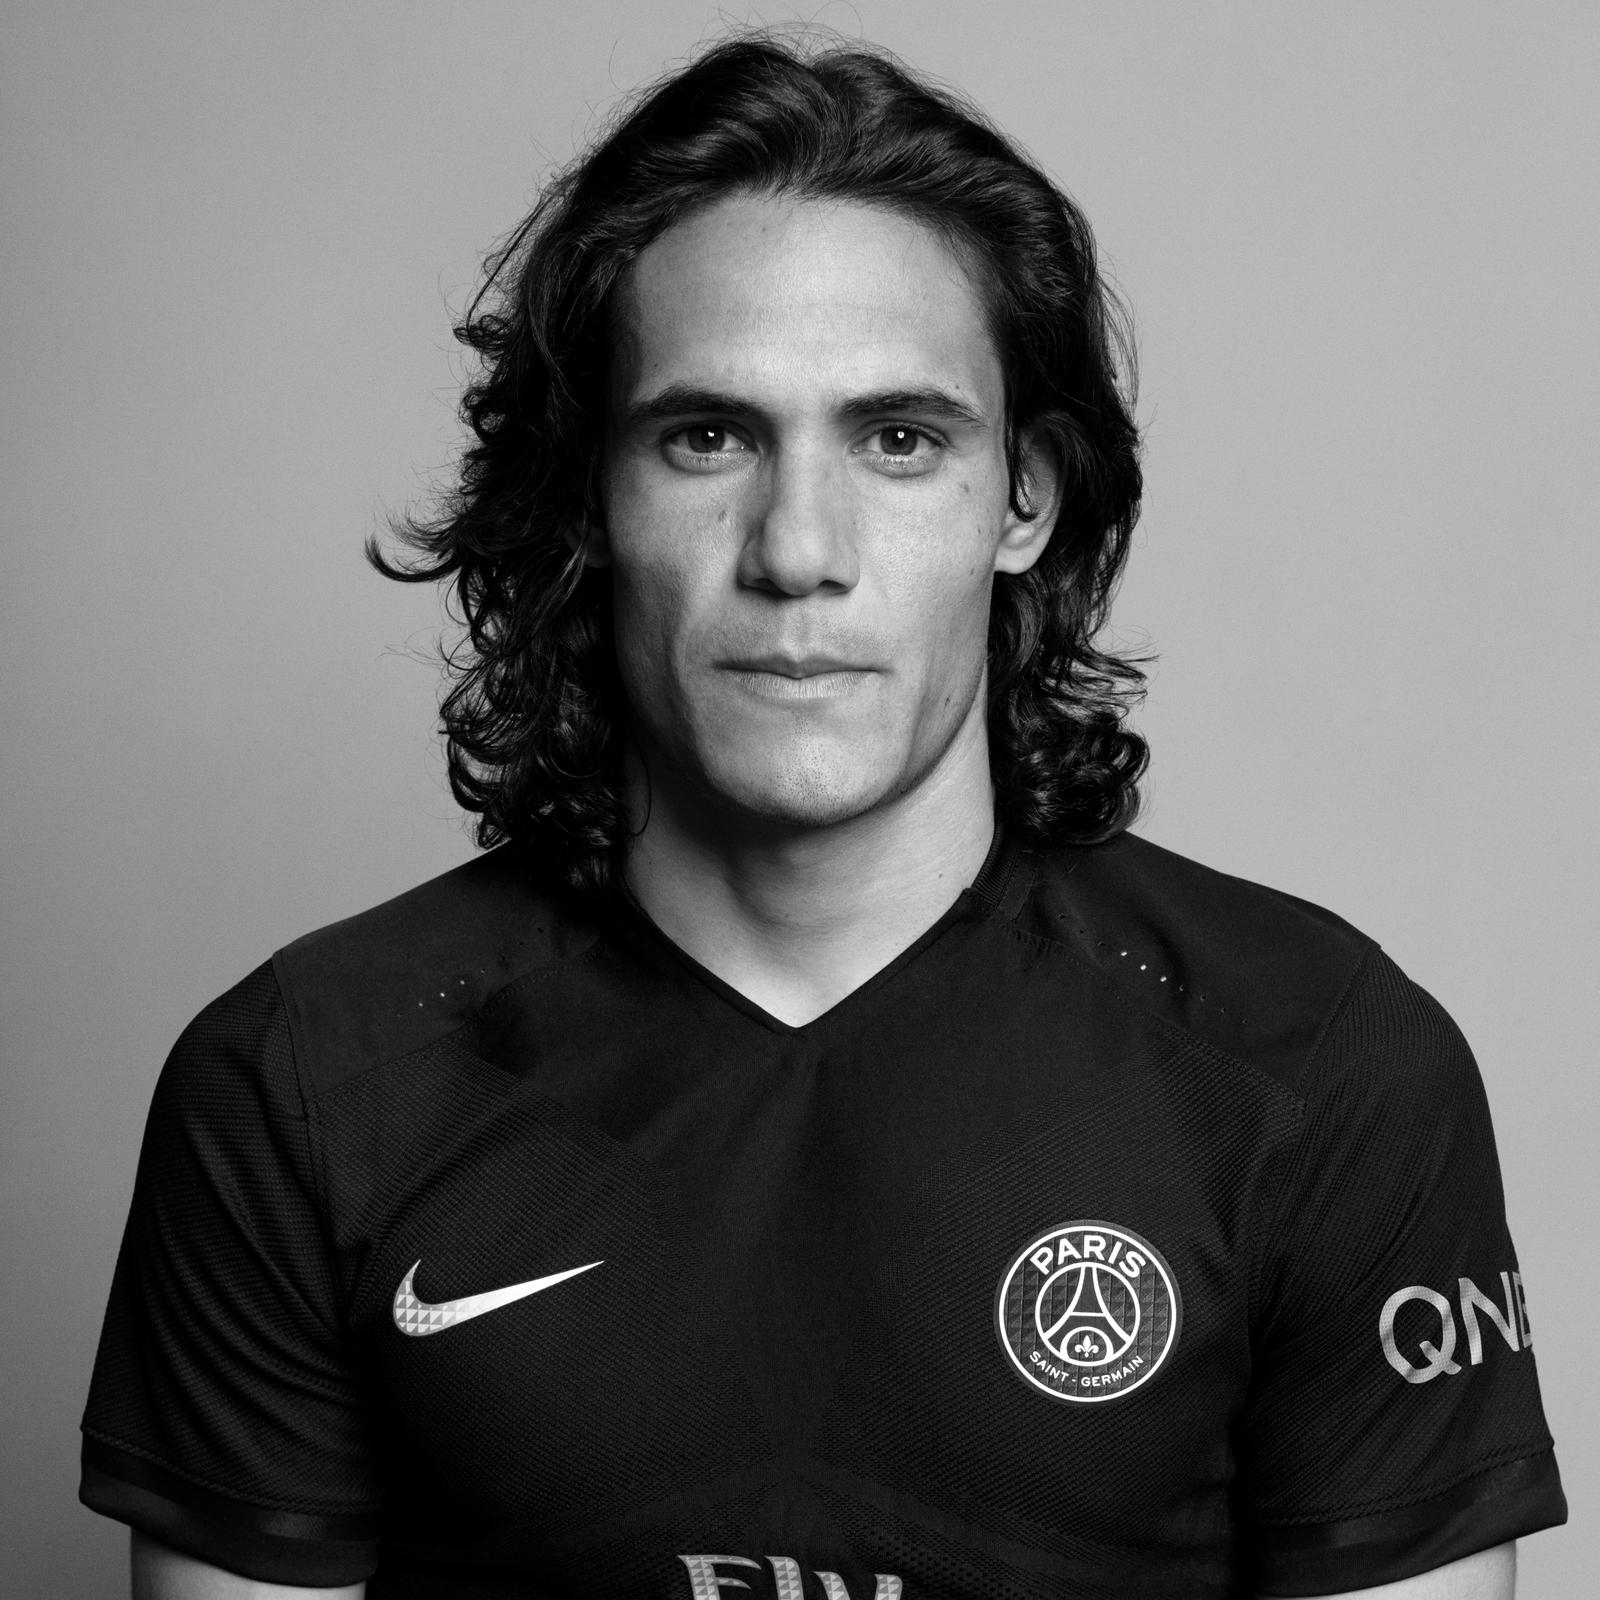 Psg darklight cavani01 0011 original square 1600